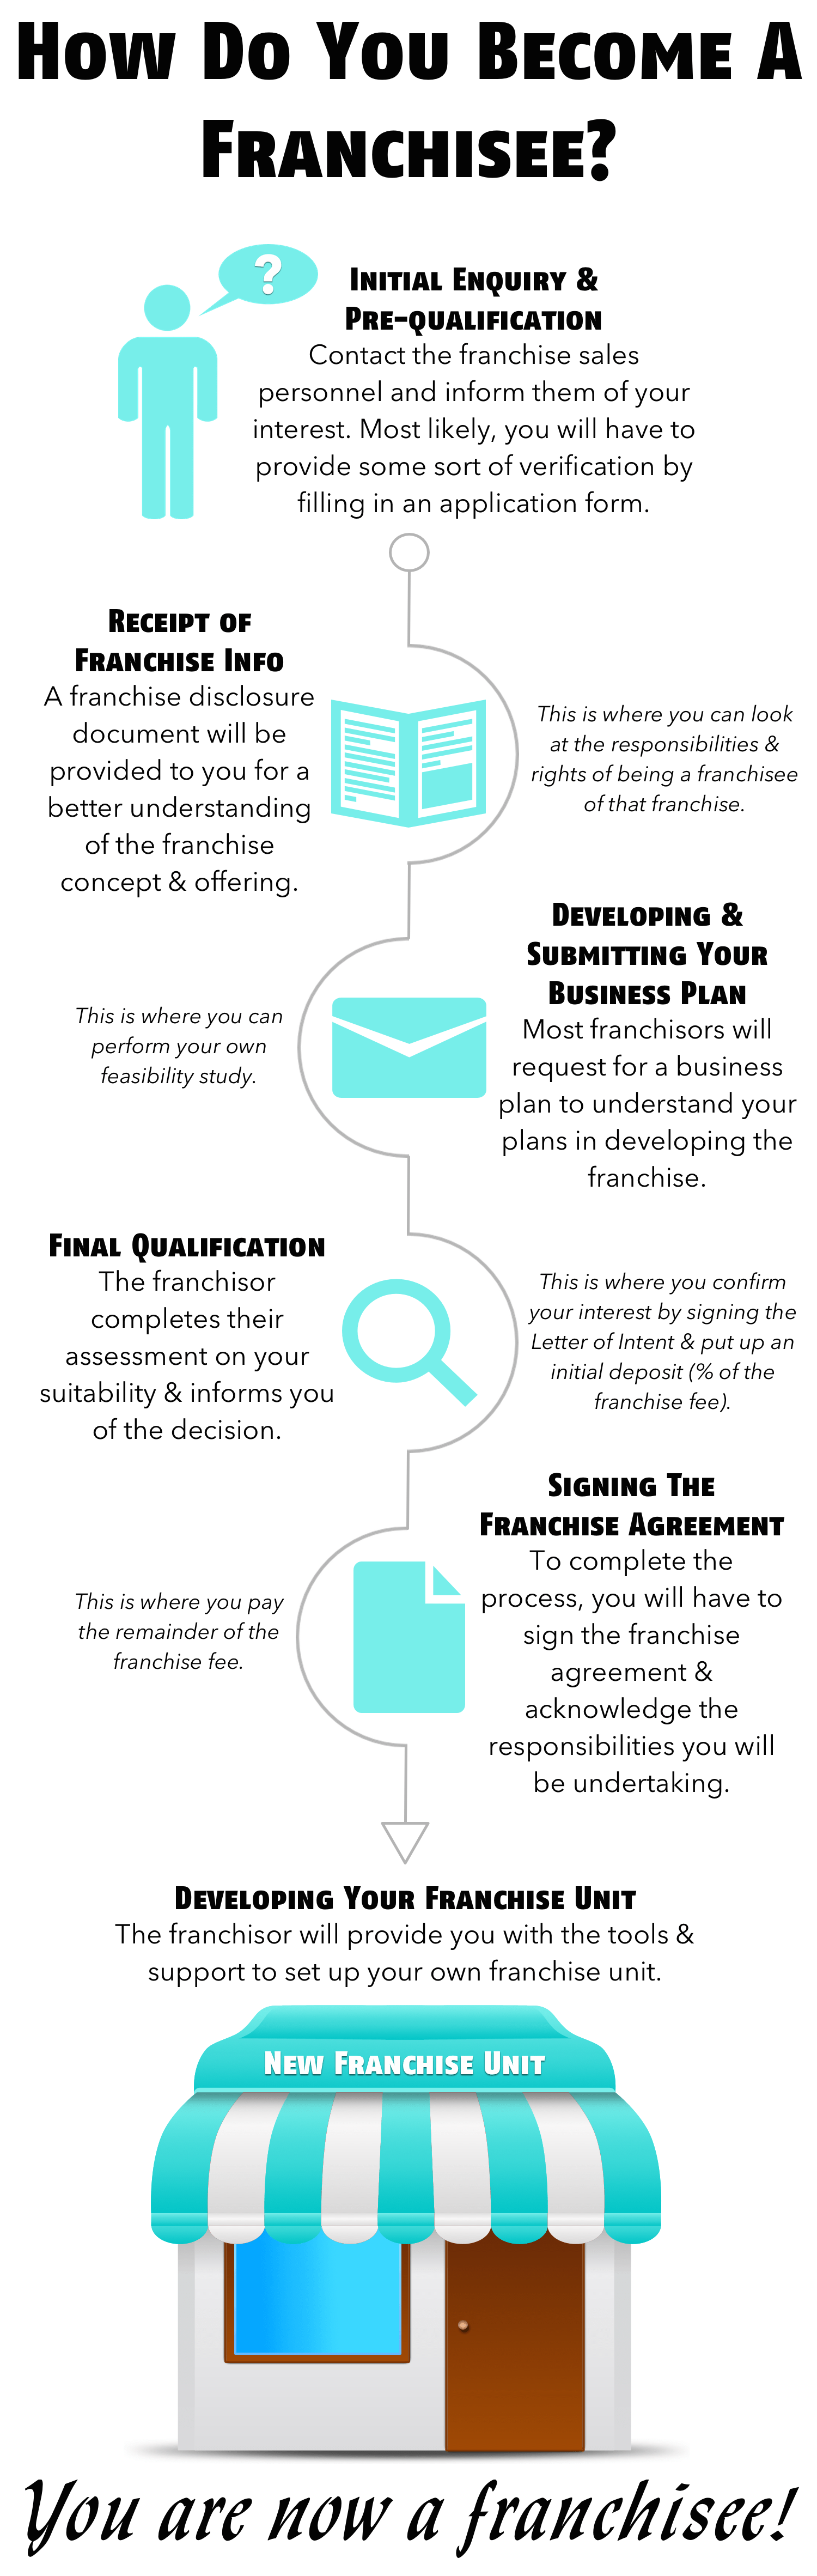 infographic-how-do-you-become-a-franchisee